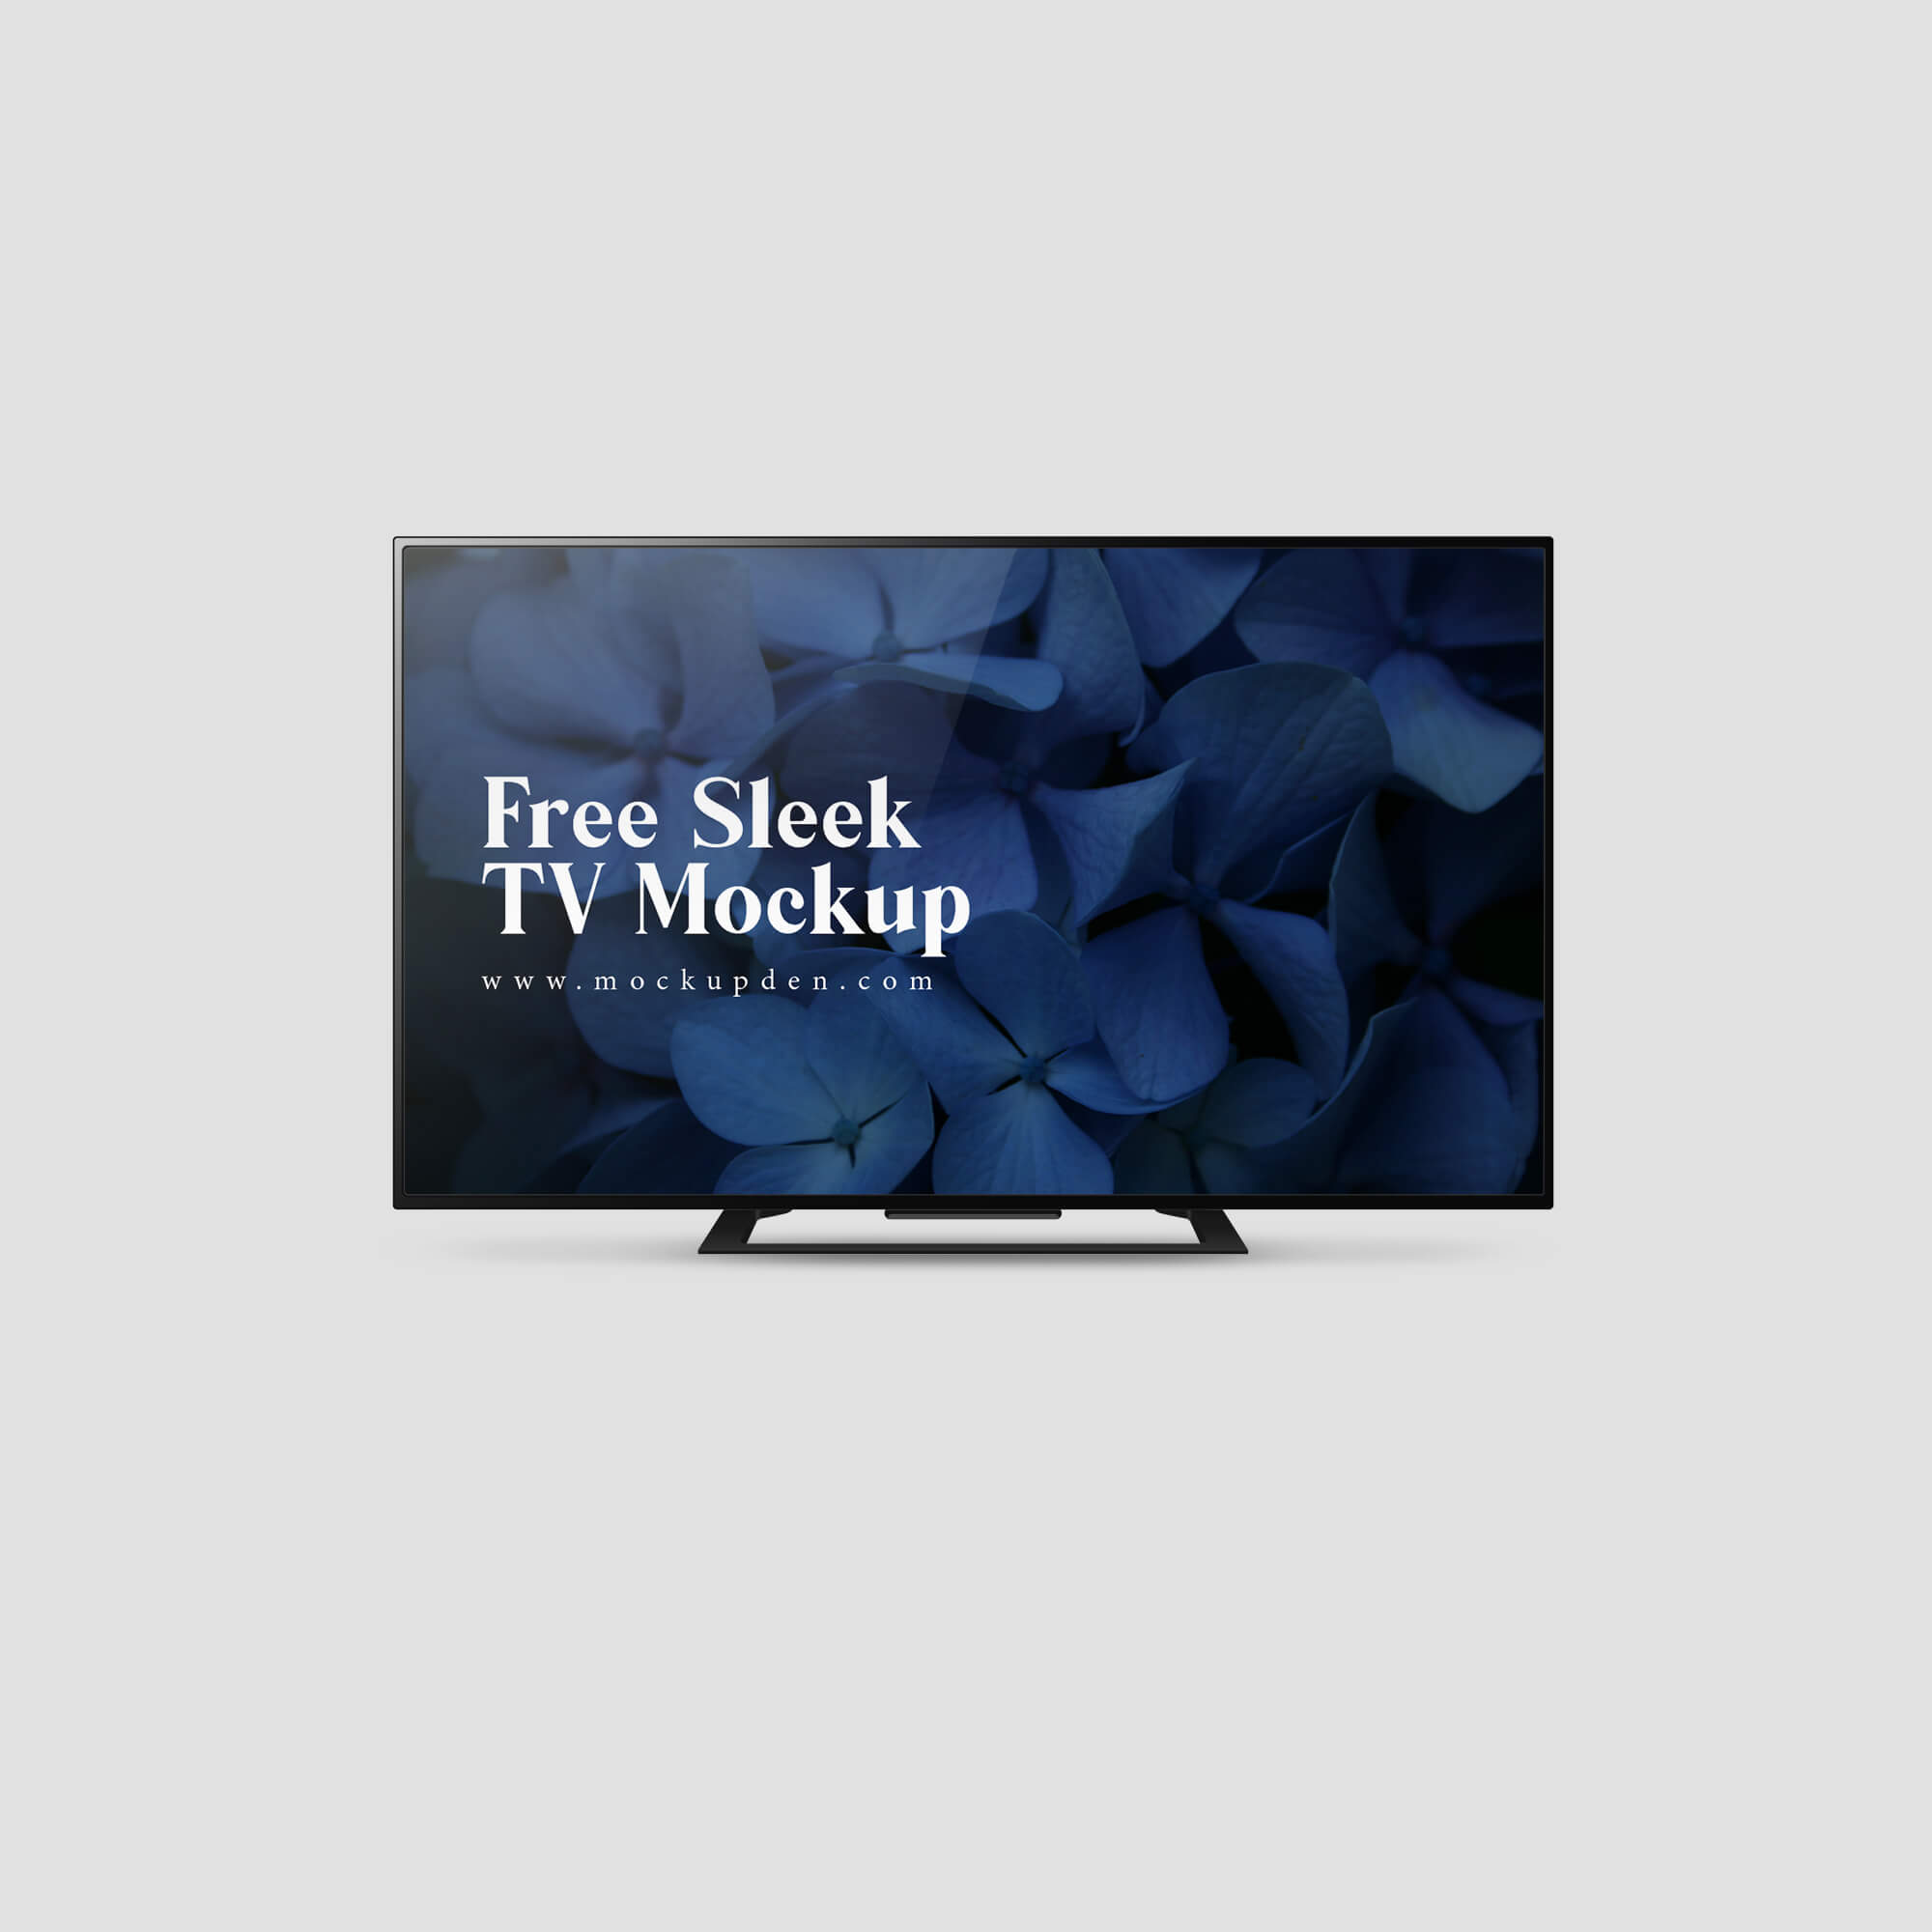 Design Free Sleek TV Mockup PSD Template